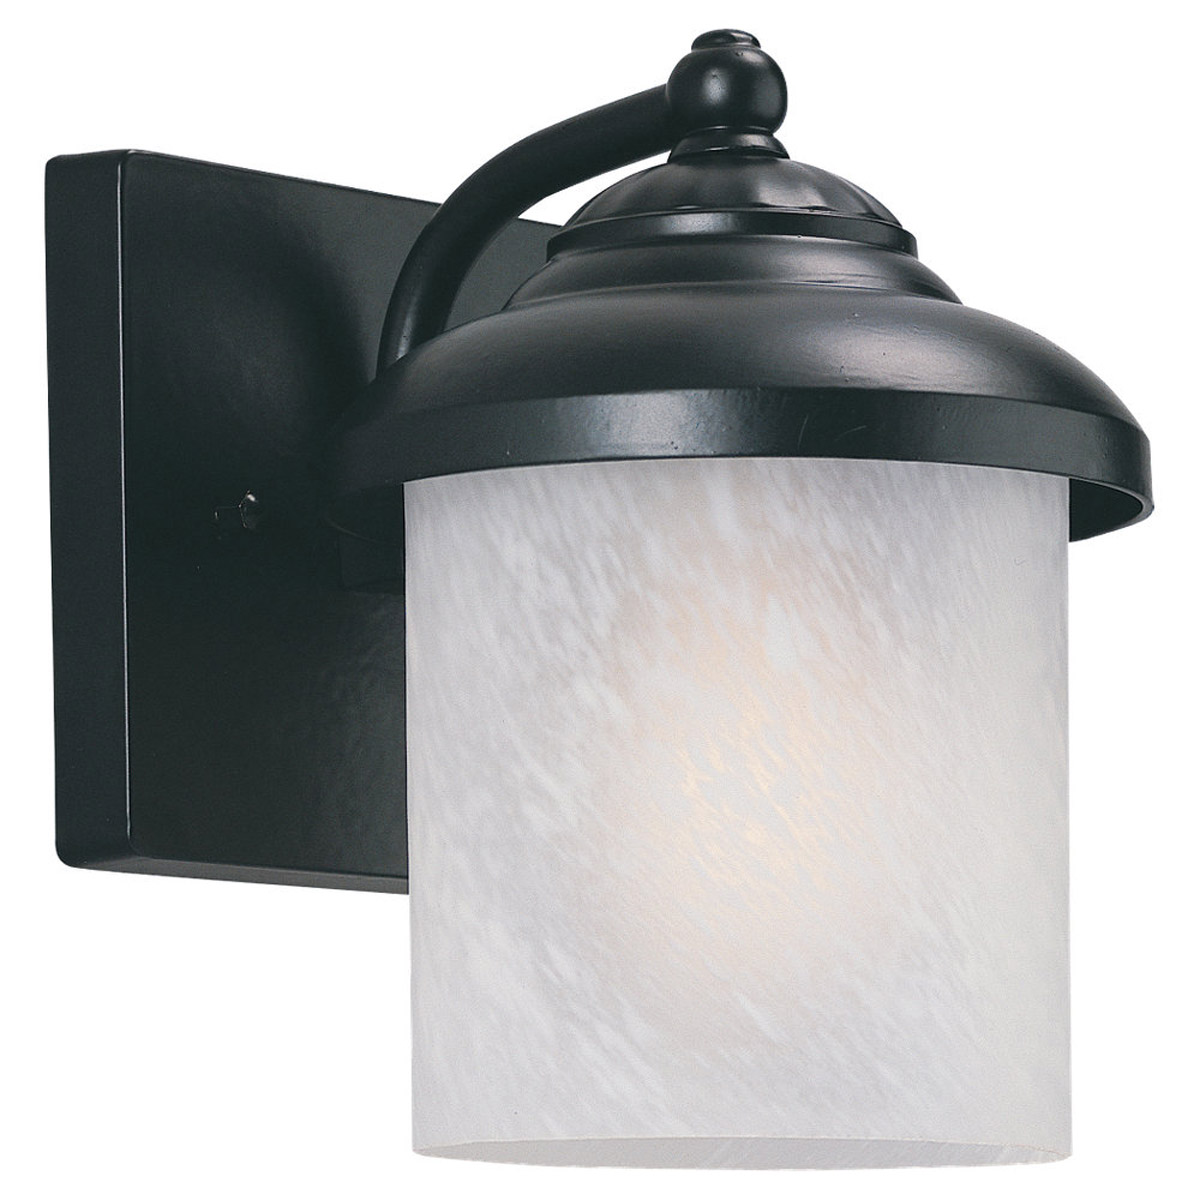 Sea Gull 89048PBLE-12 Yorktowne 1 Light 8 inch Black Outdoor Wall Lantern in Photocell, Energy Efficient photo